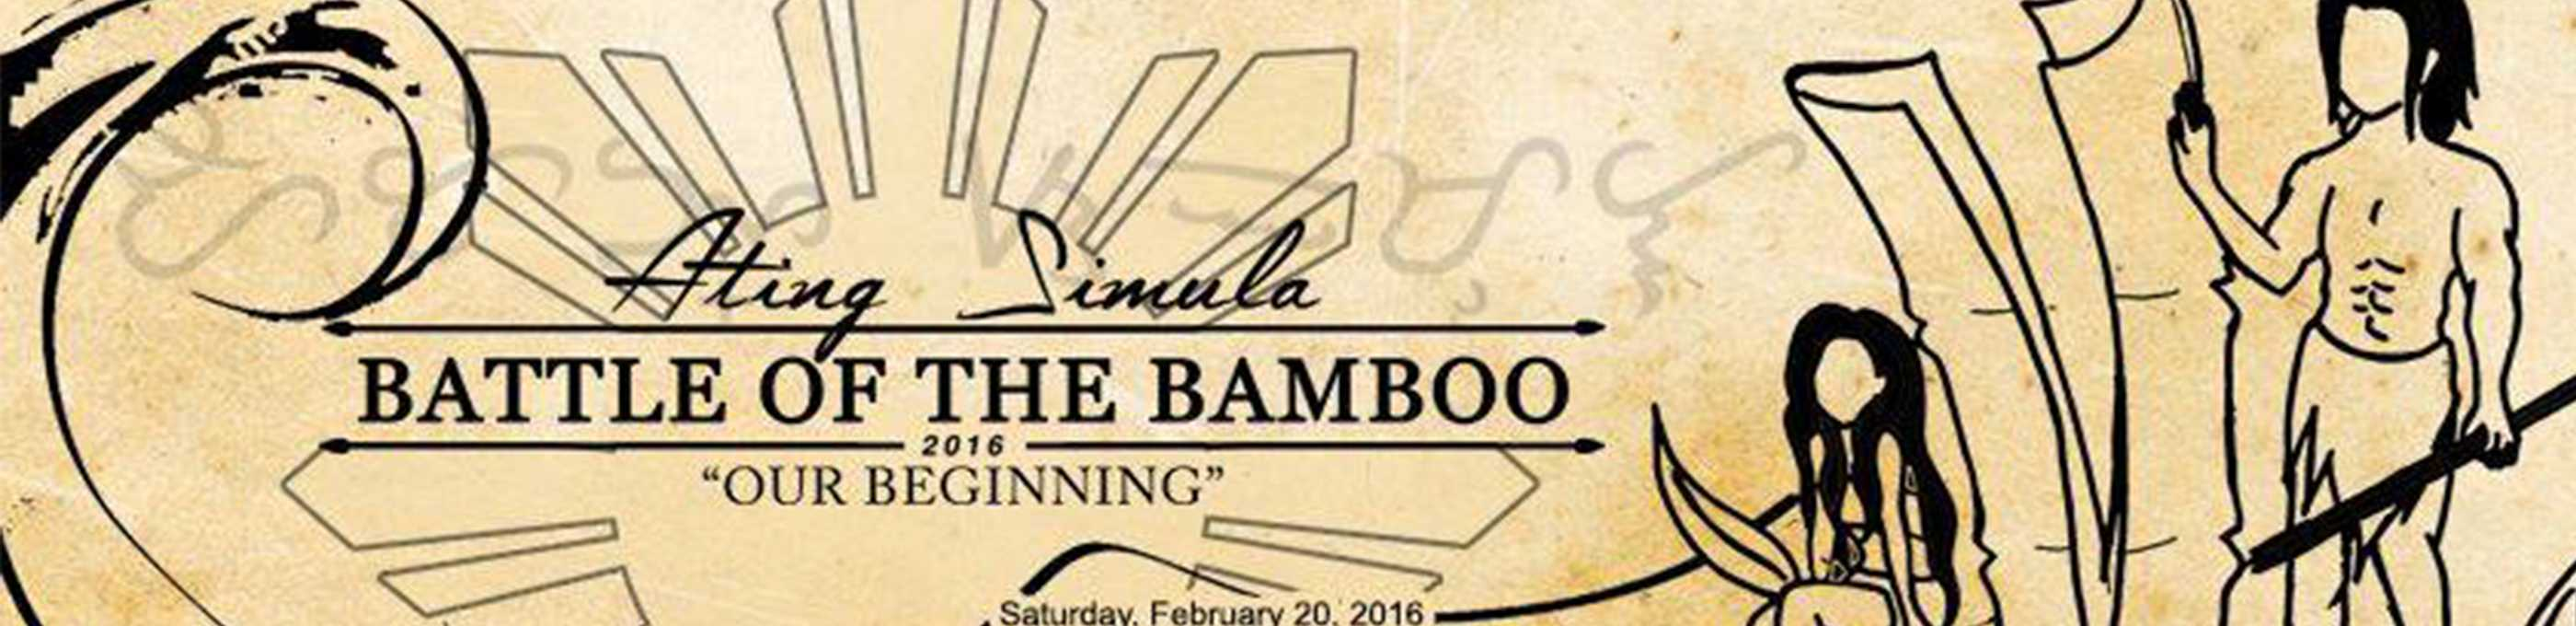 Filipino club embraces the cultural ambiance of Battle of the Bamboo: Ating Simula